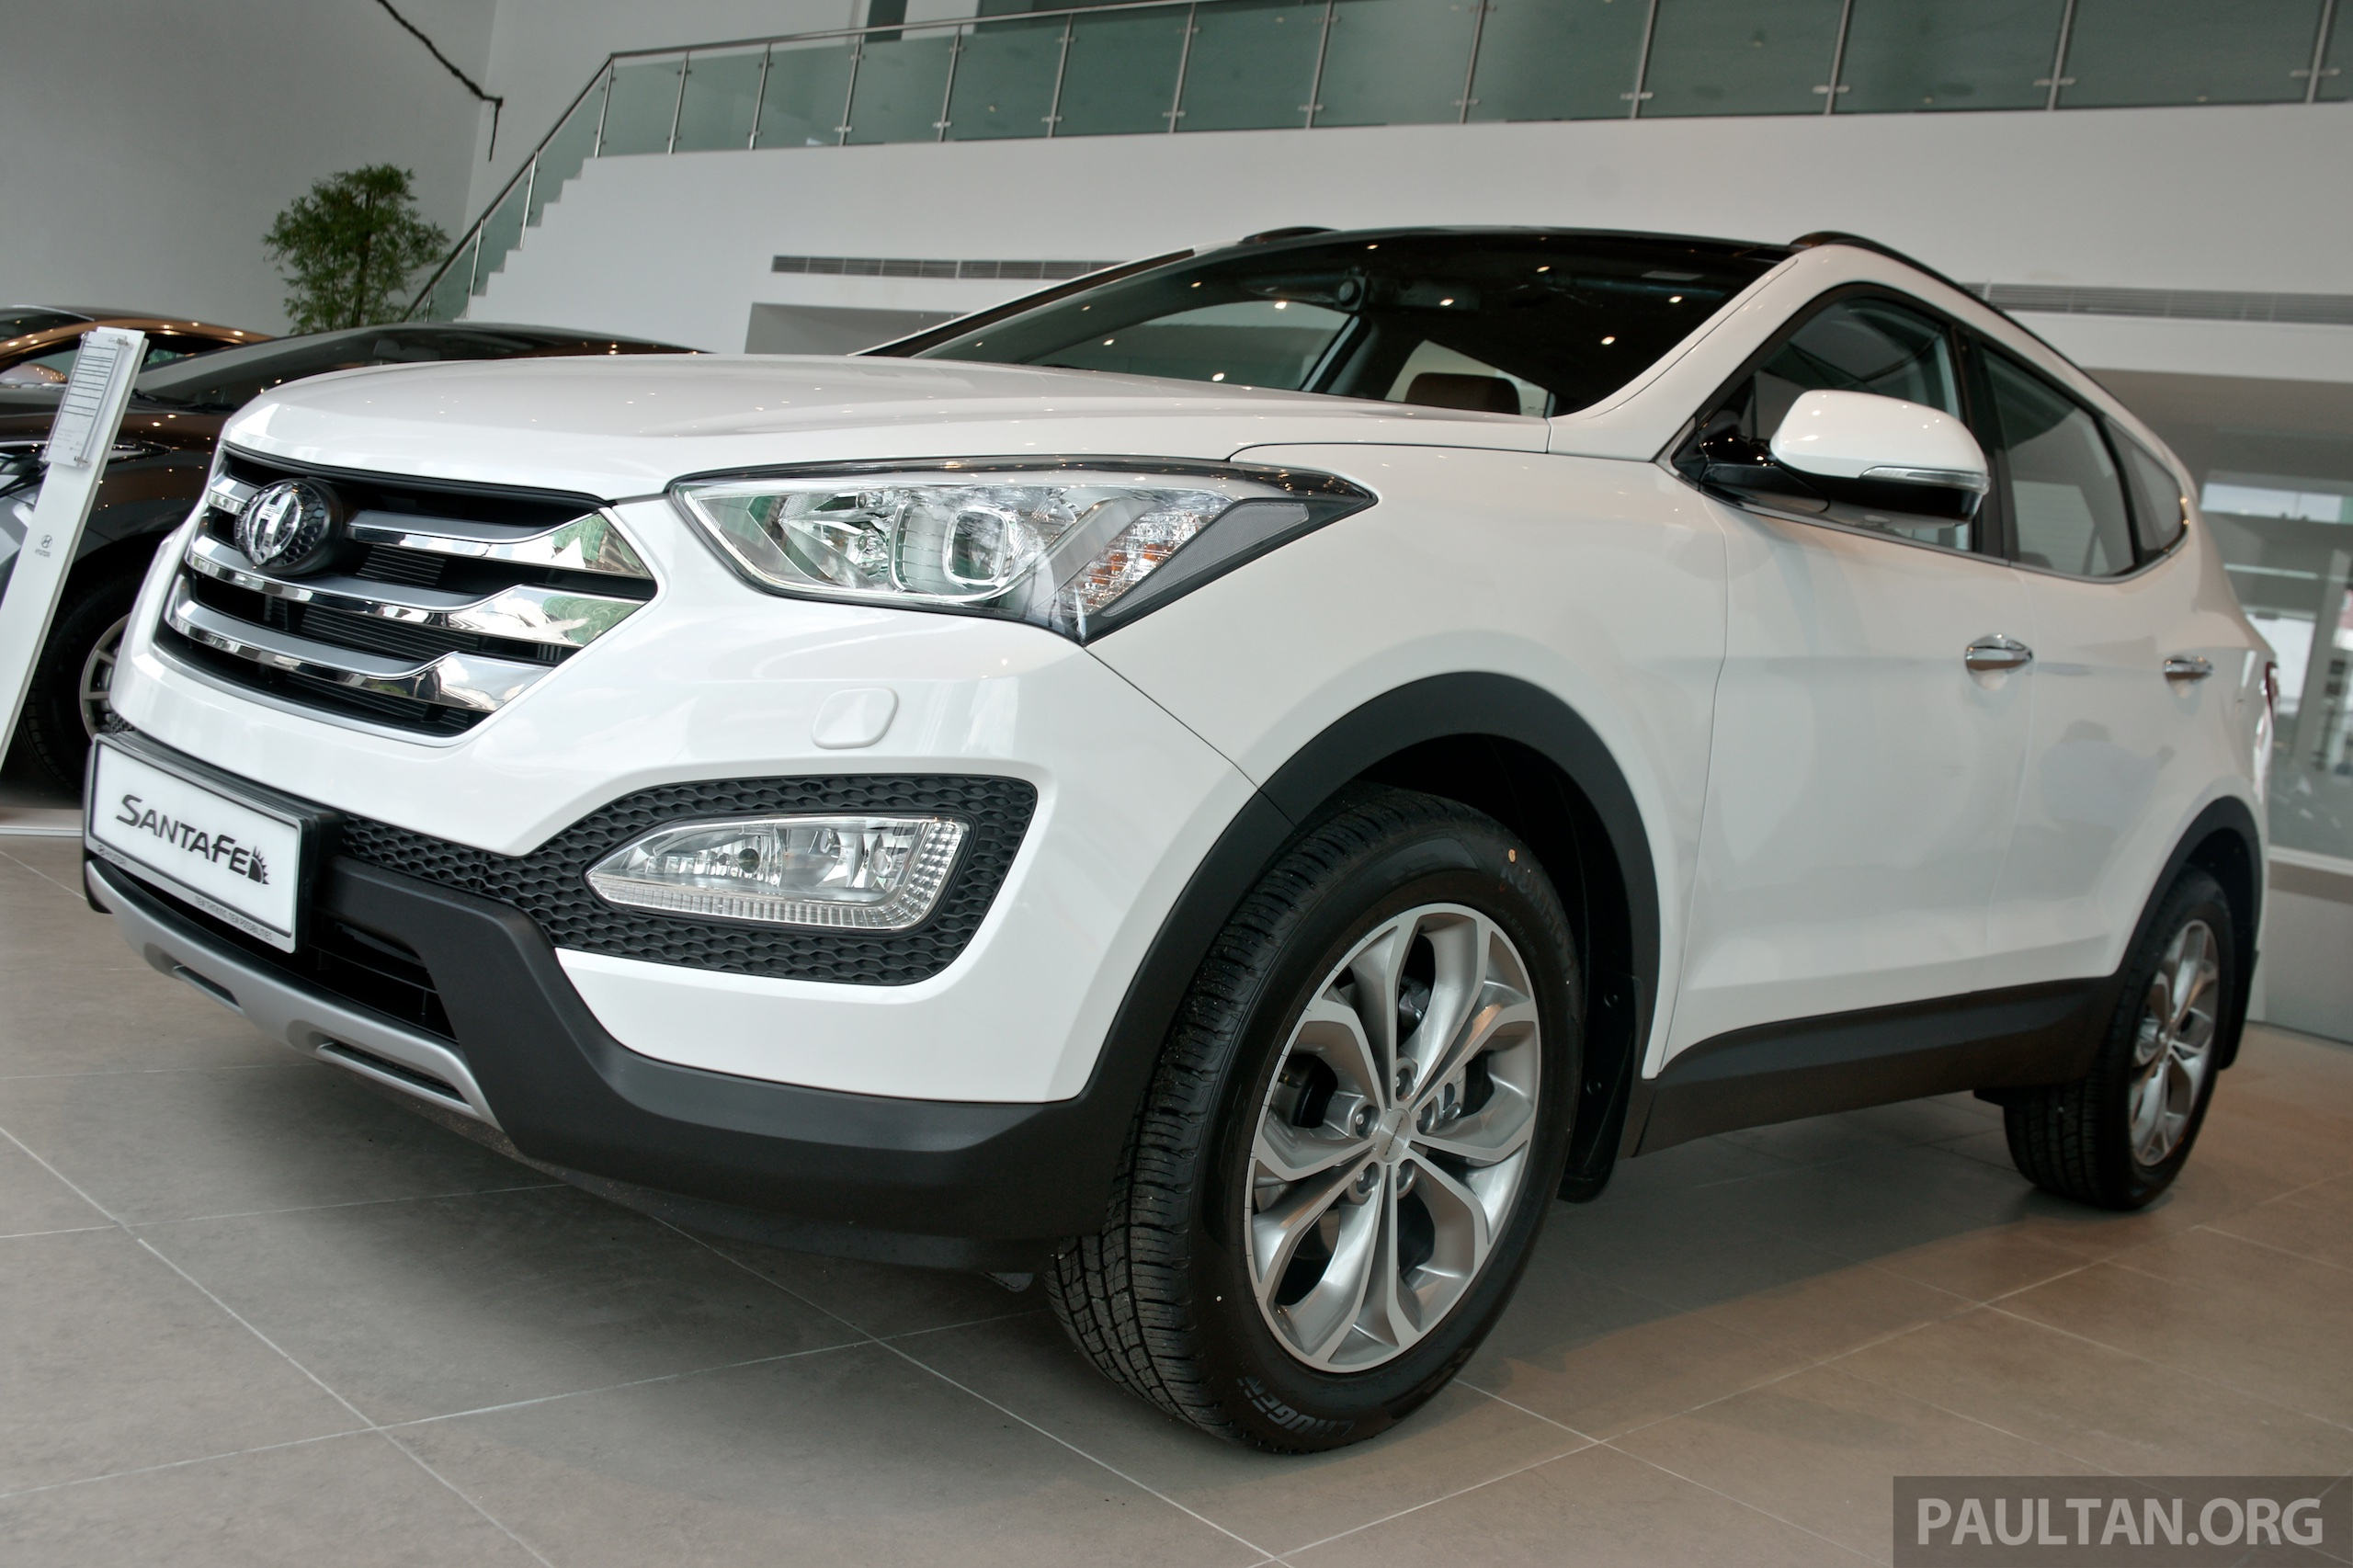 hyundai santa fe premium 6 airbags rm179k 191k. Black Bedroom Furniture Sets. Home Design Ideas